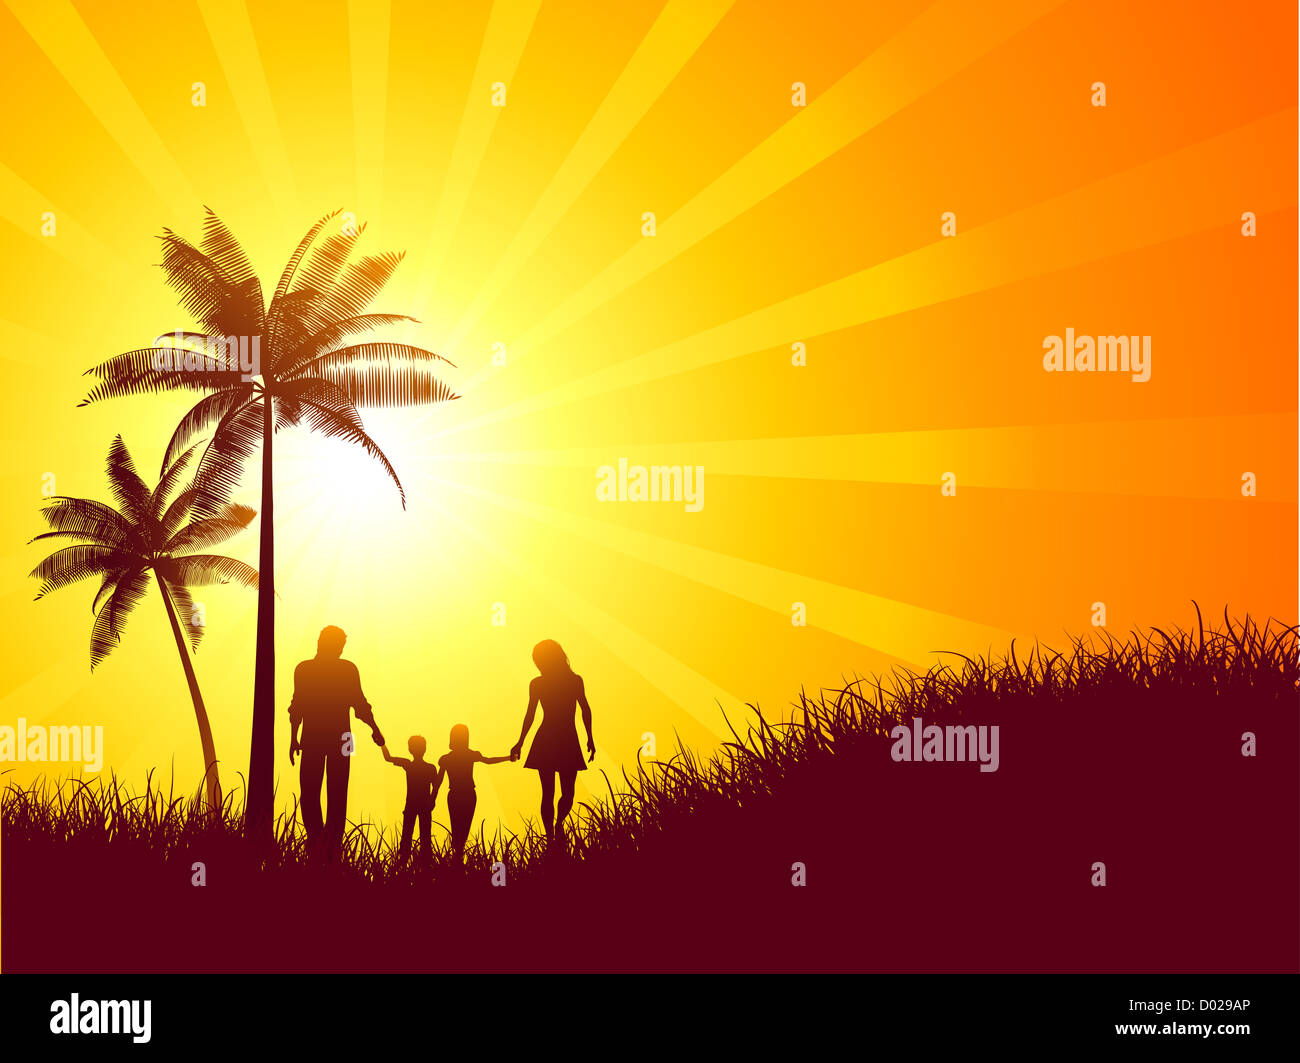 Summer landscape with silhouette of a family walking - Stock Image